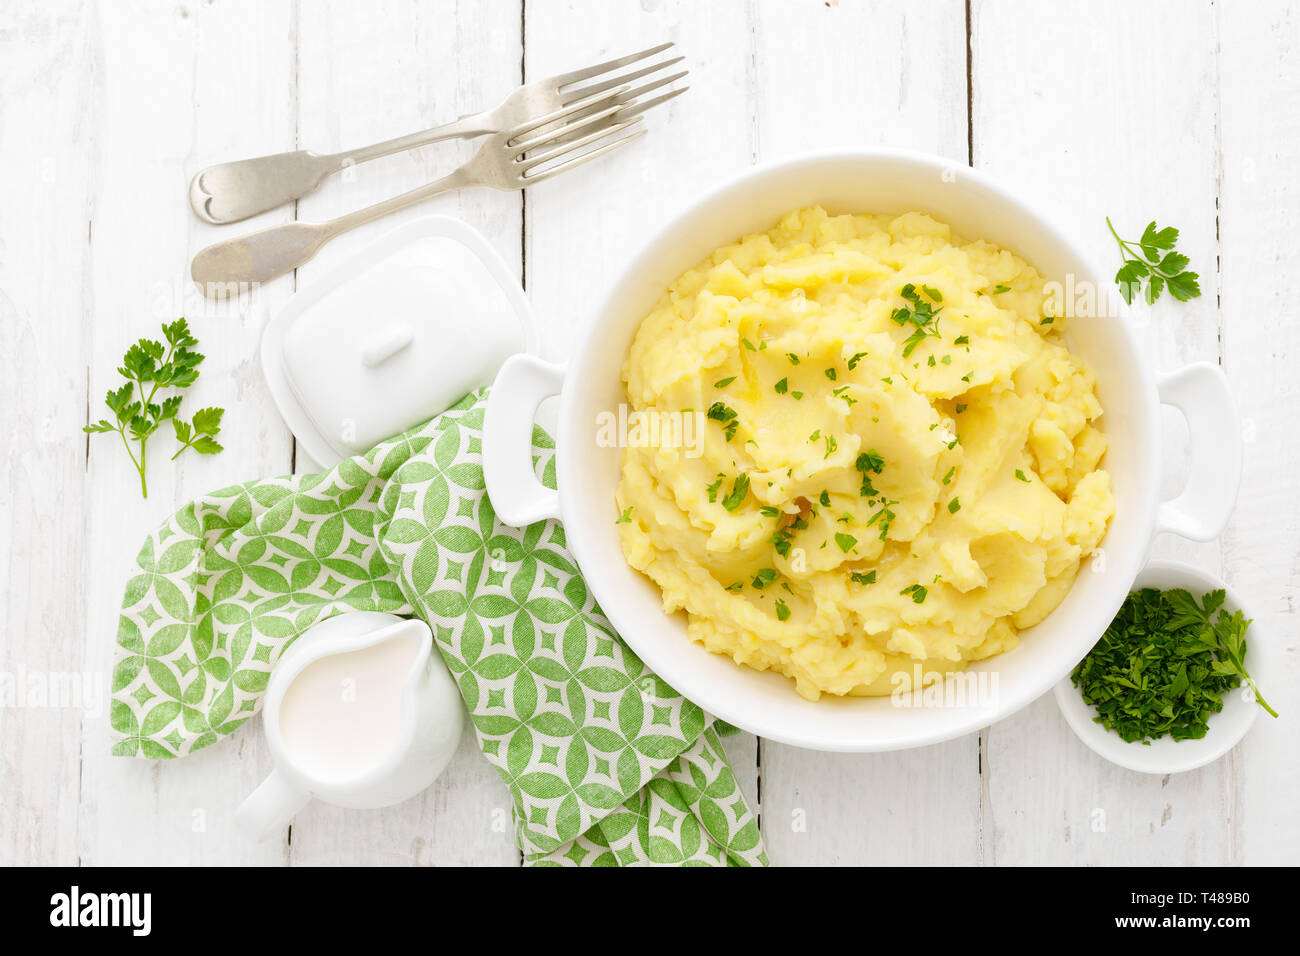 Mashed potato with butter and milk on table - Stock Image